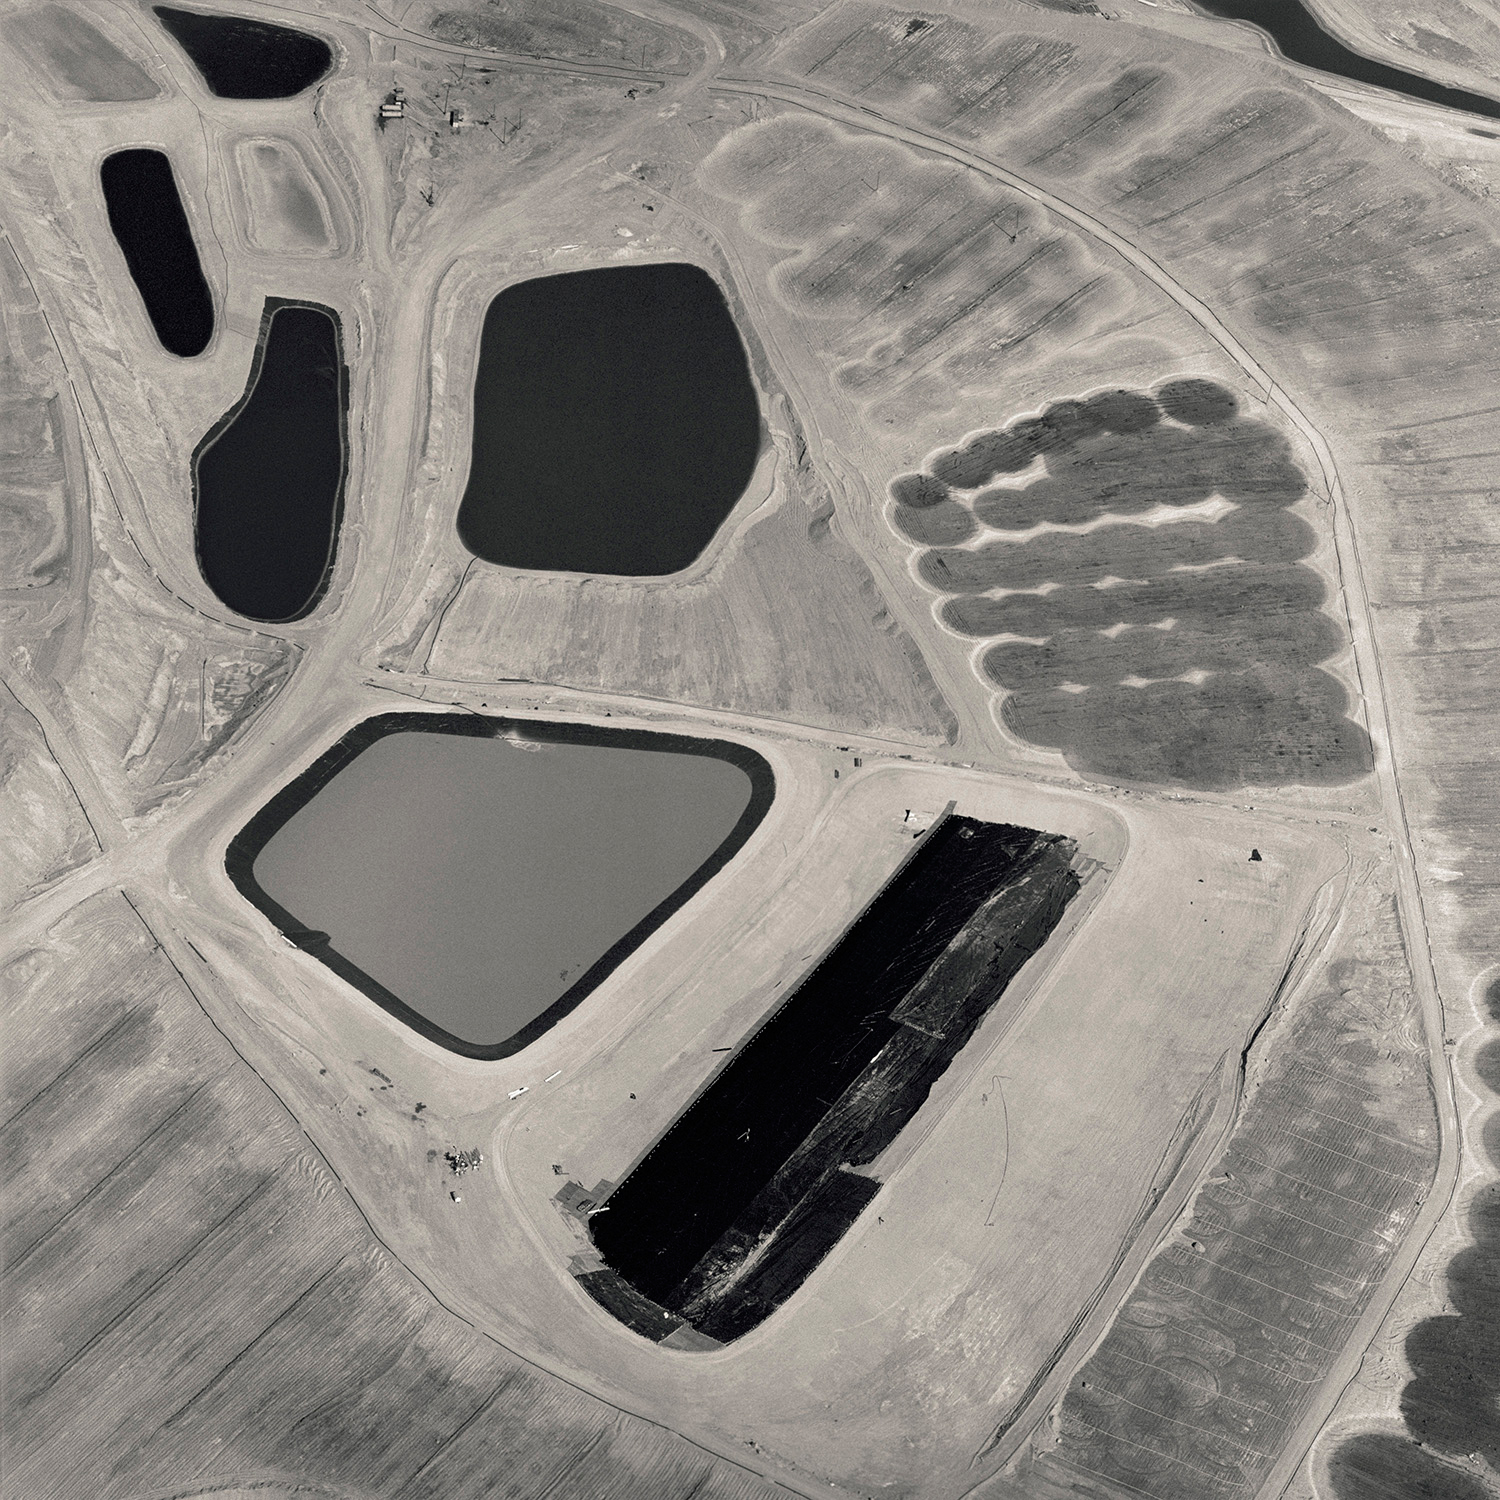 David Maisel, Black Maps (Bingham Canyon, Utah 2), 1985.